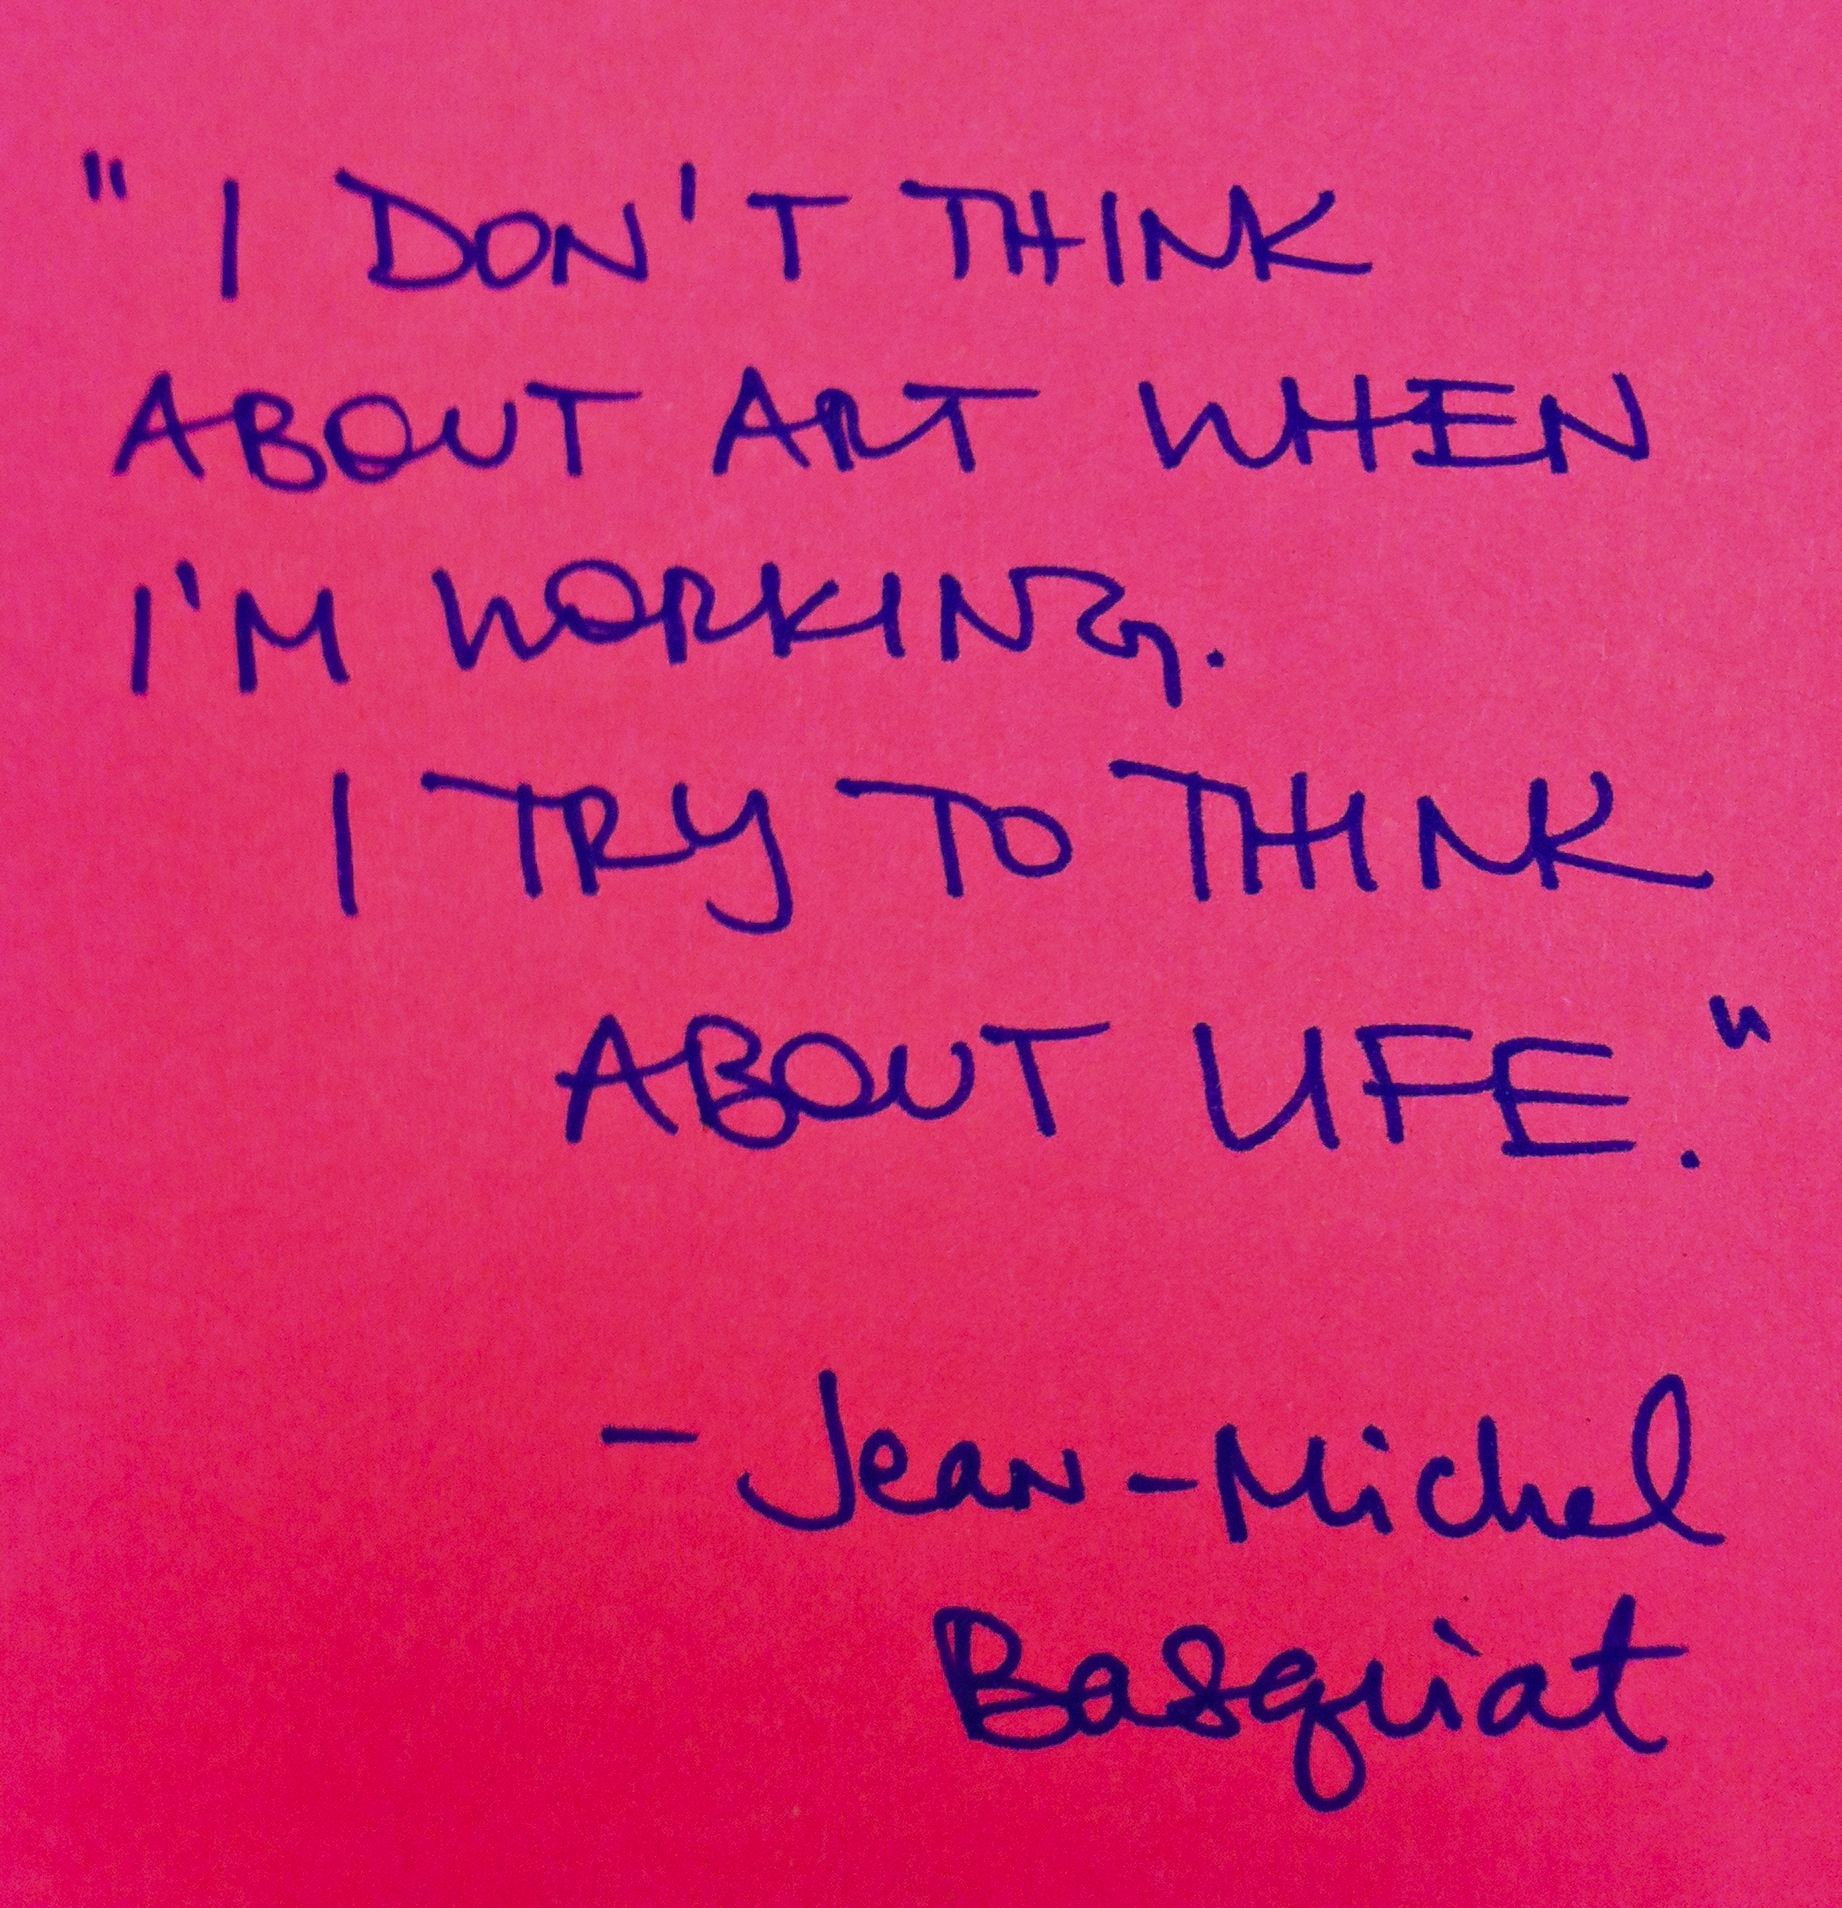 Life... the best muse. This Basquiat quote was hand